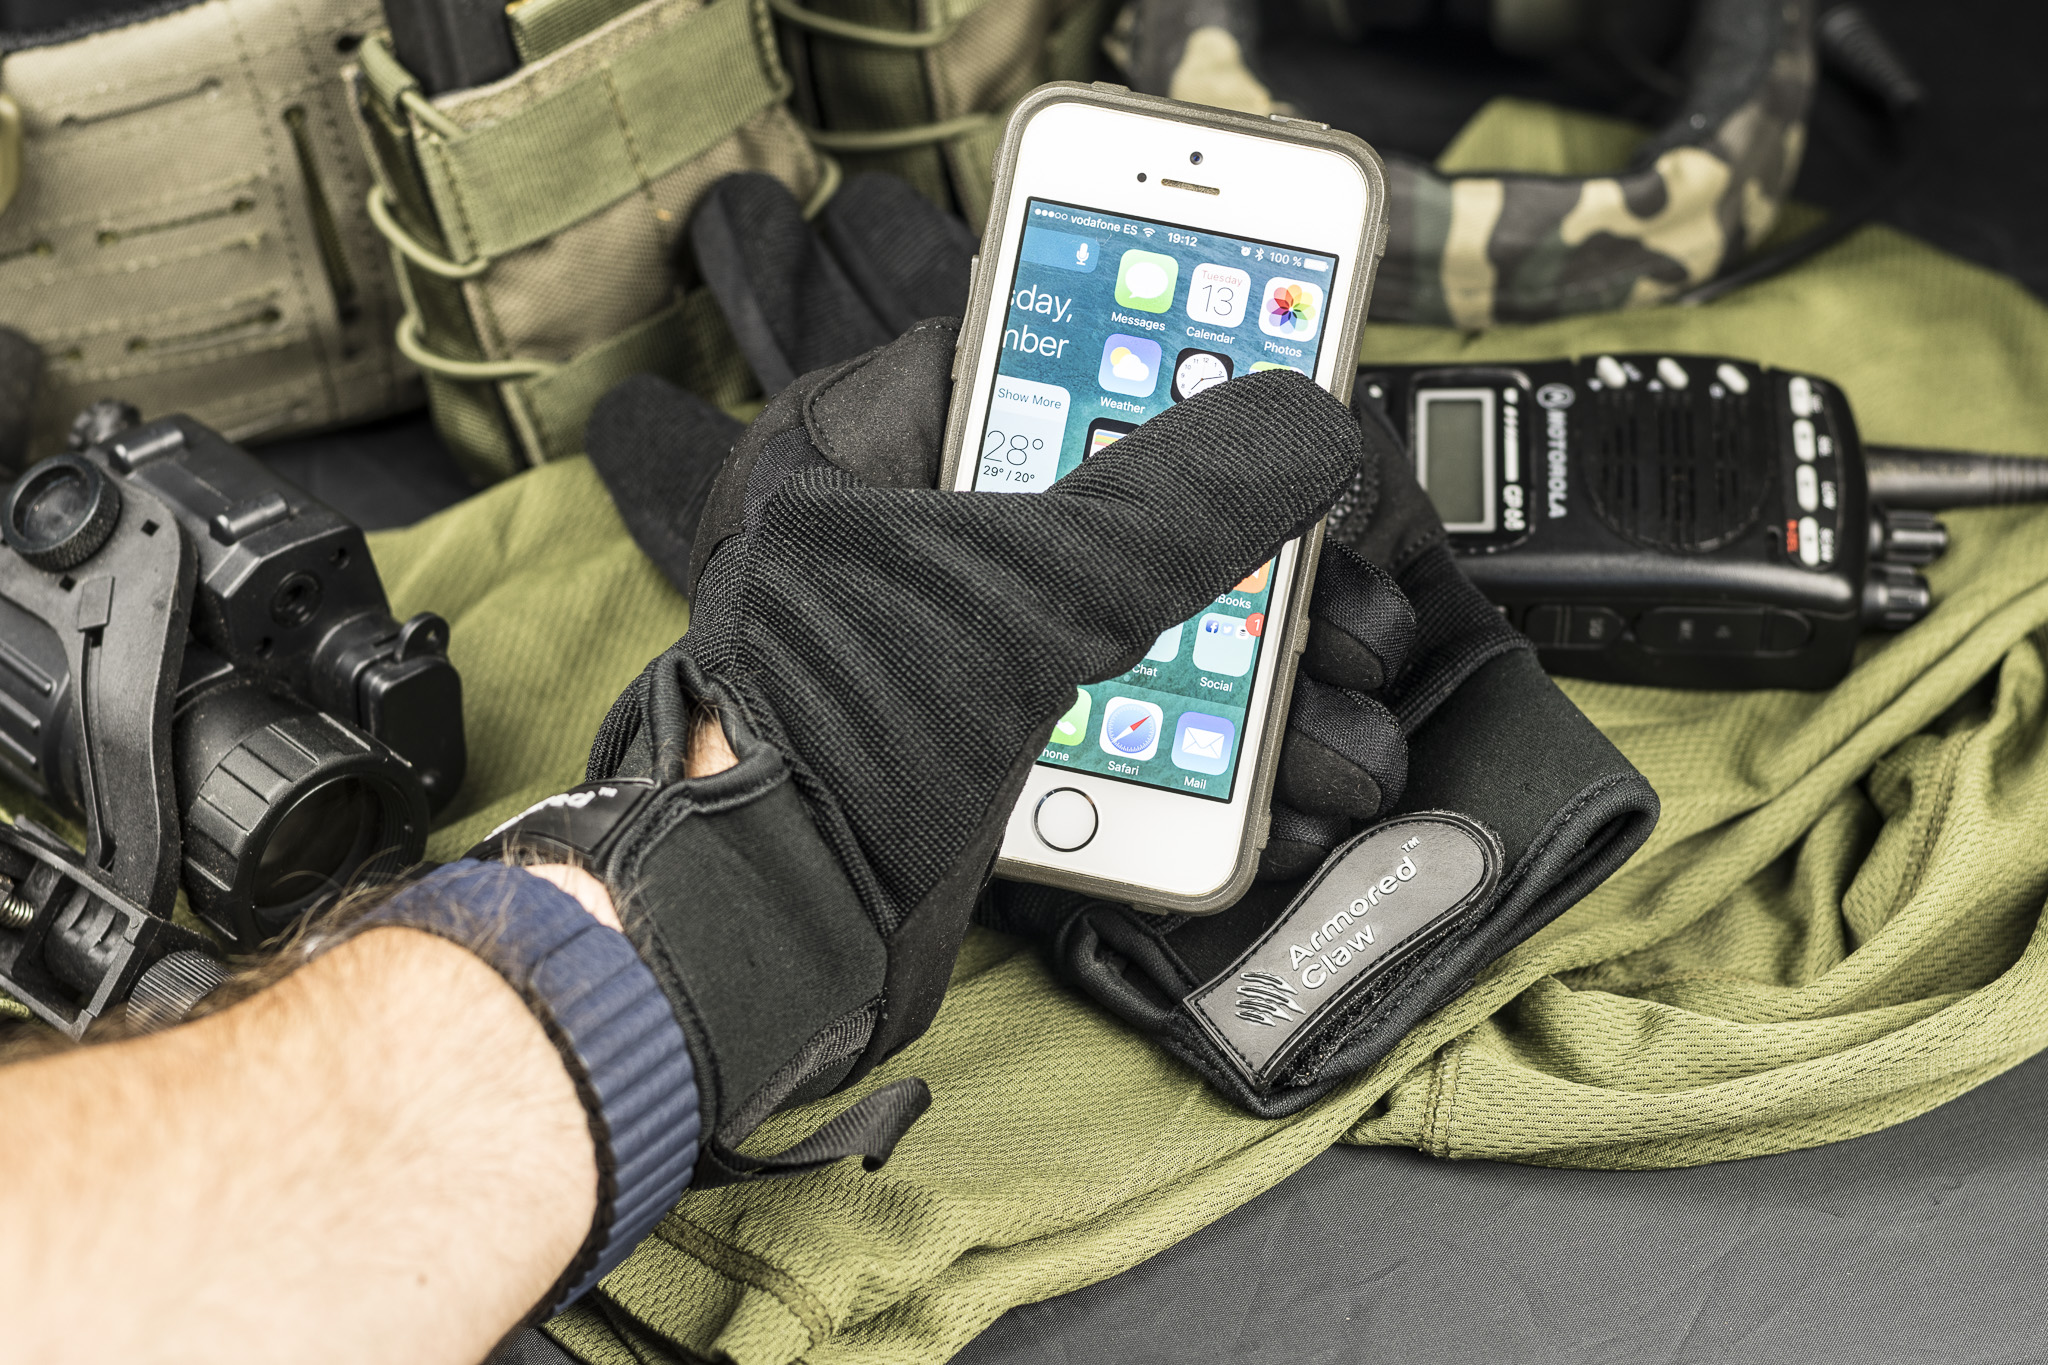 Armored Claw Shield gloves with a smartphone